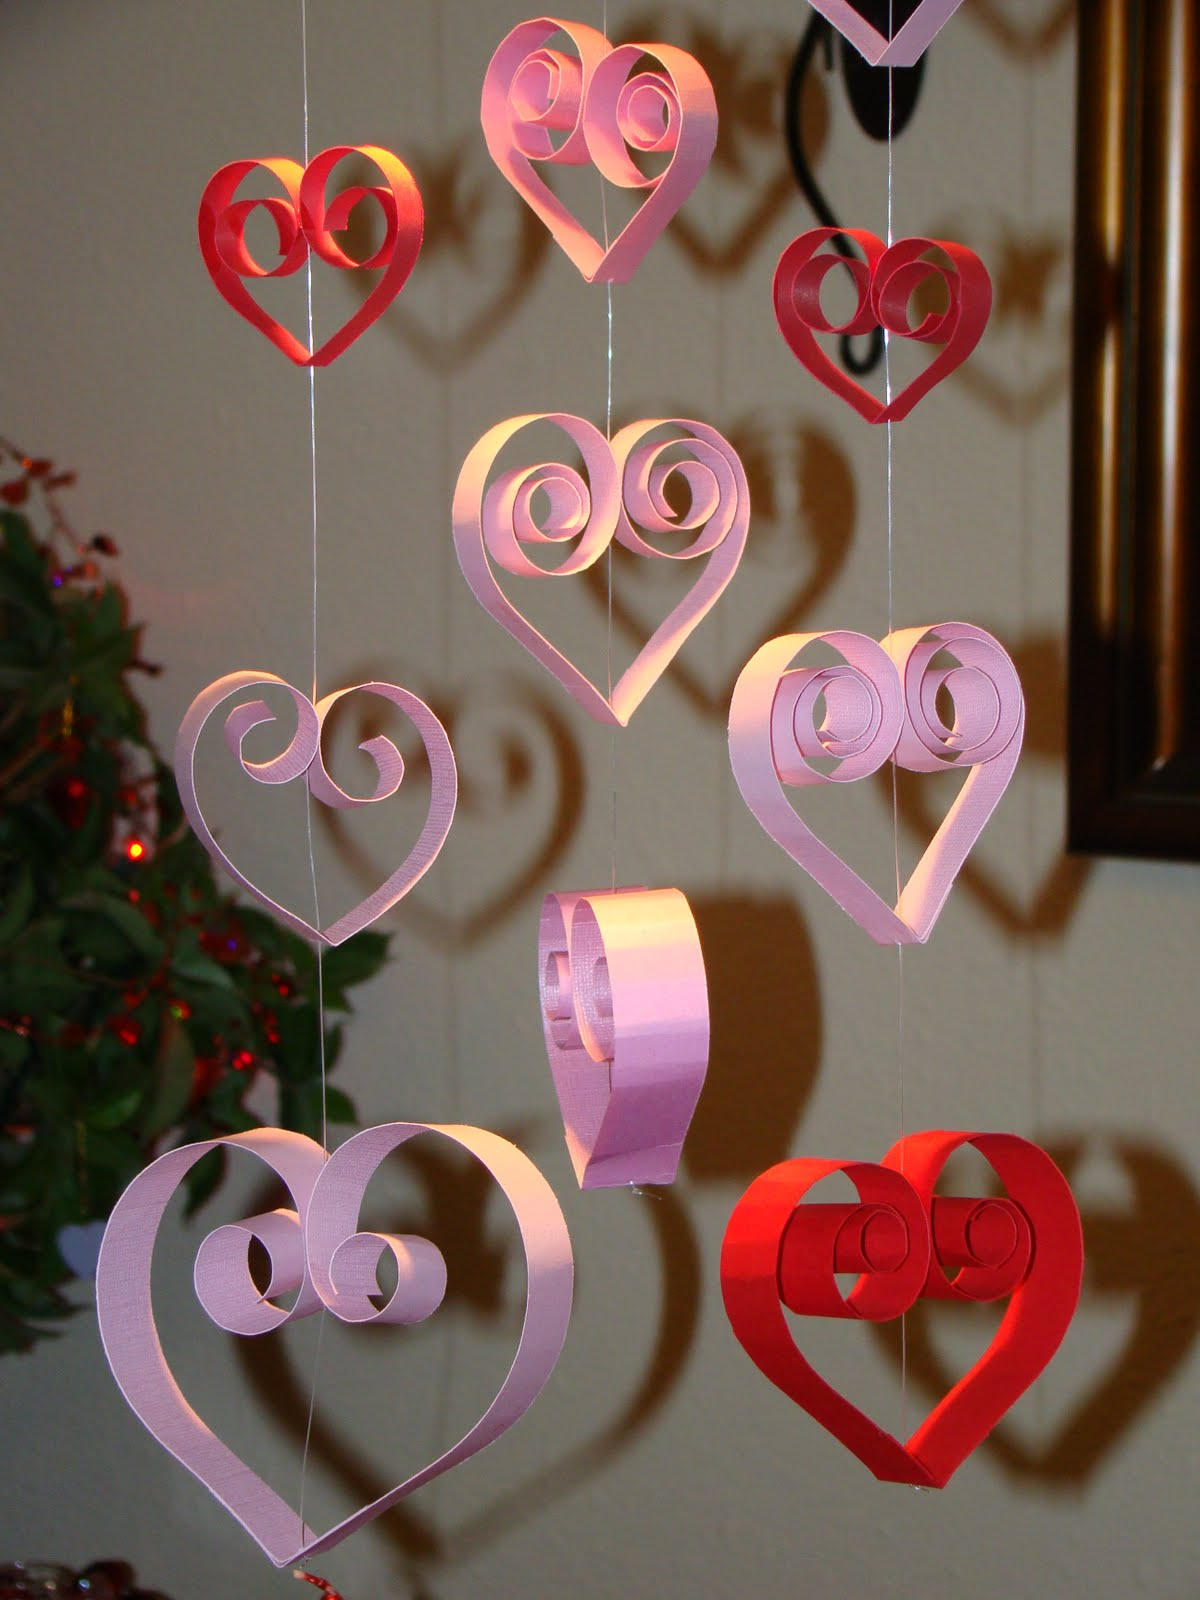 adorable-valentine-day-decorations-to-make-yourself-design-ideas-paper-craft-formed-love-with-pink-and-red